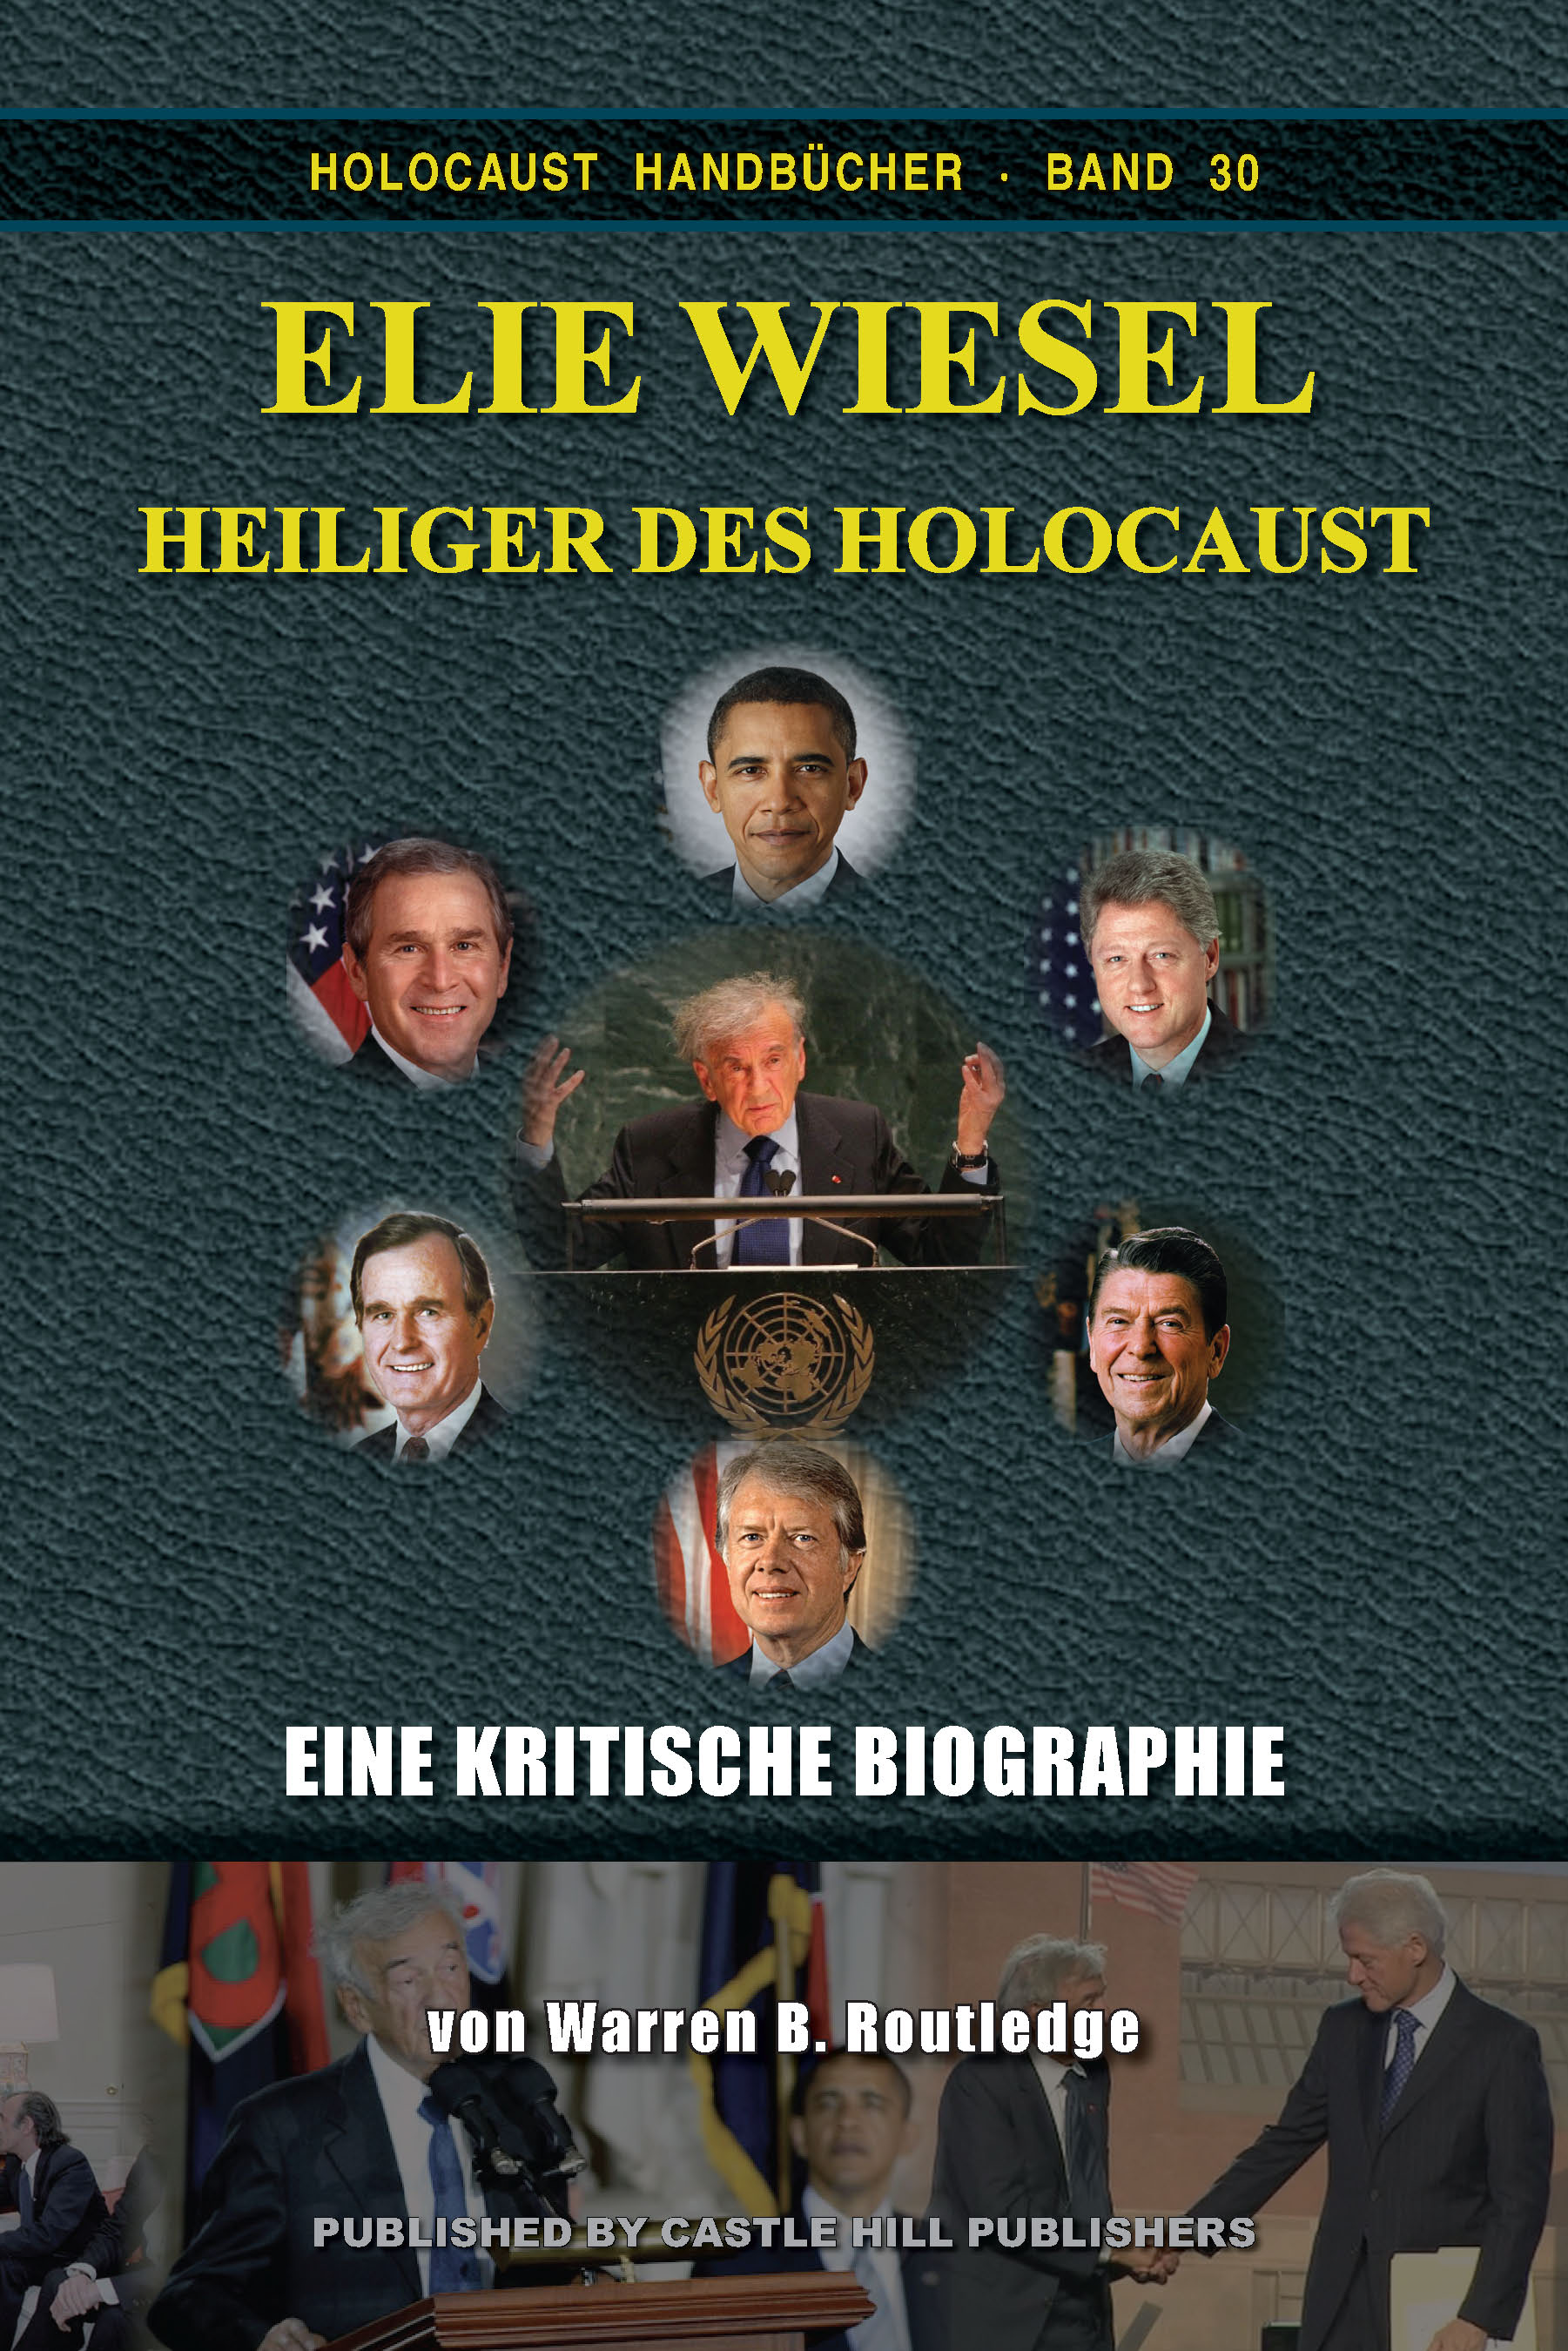 Holocaust-Handbücher: Warren B. Routledge: \'Hohepriester des Holocaust\'